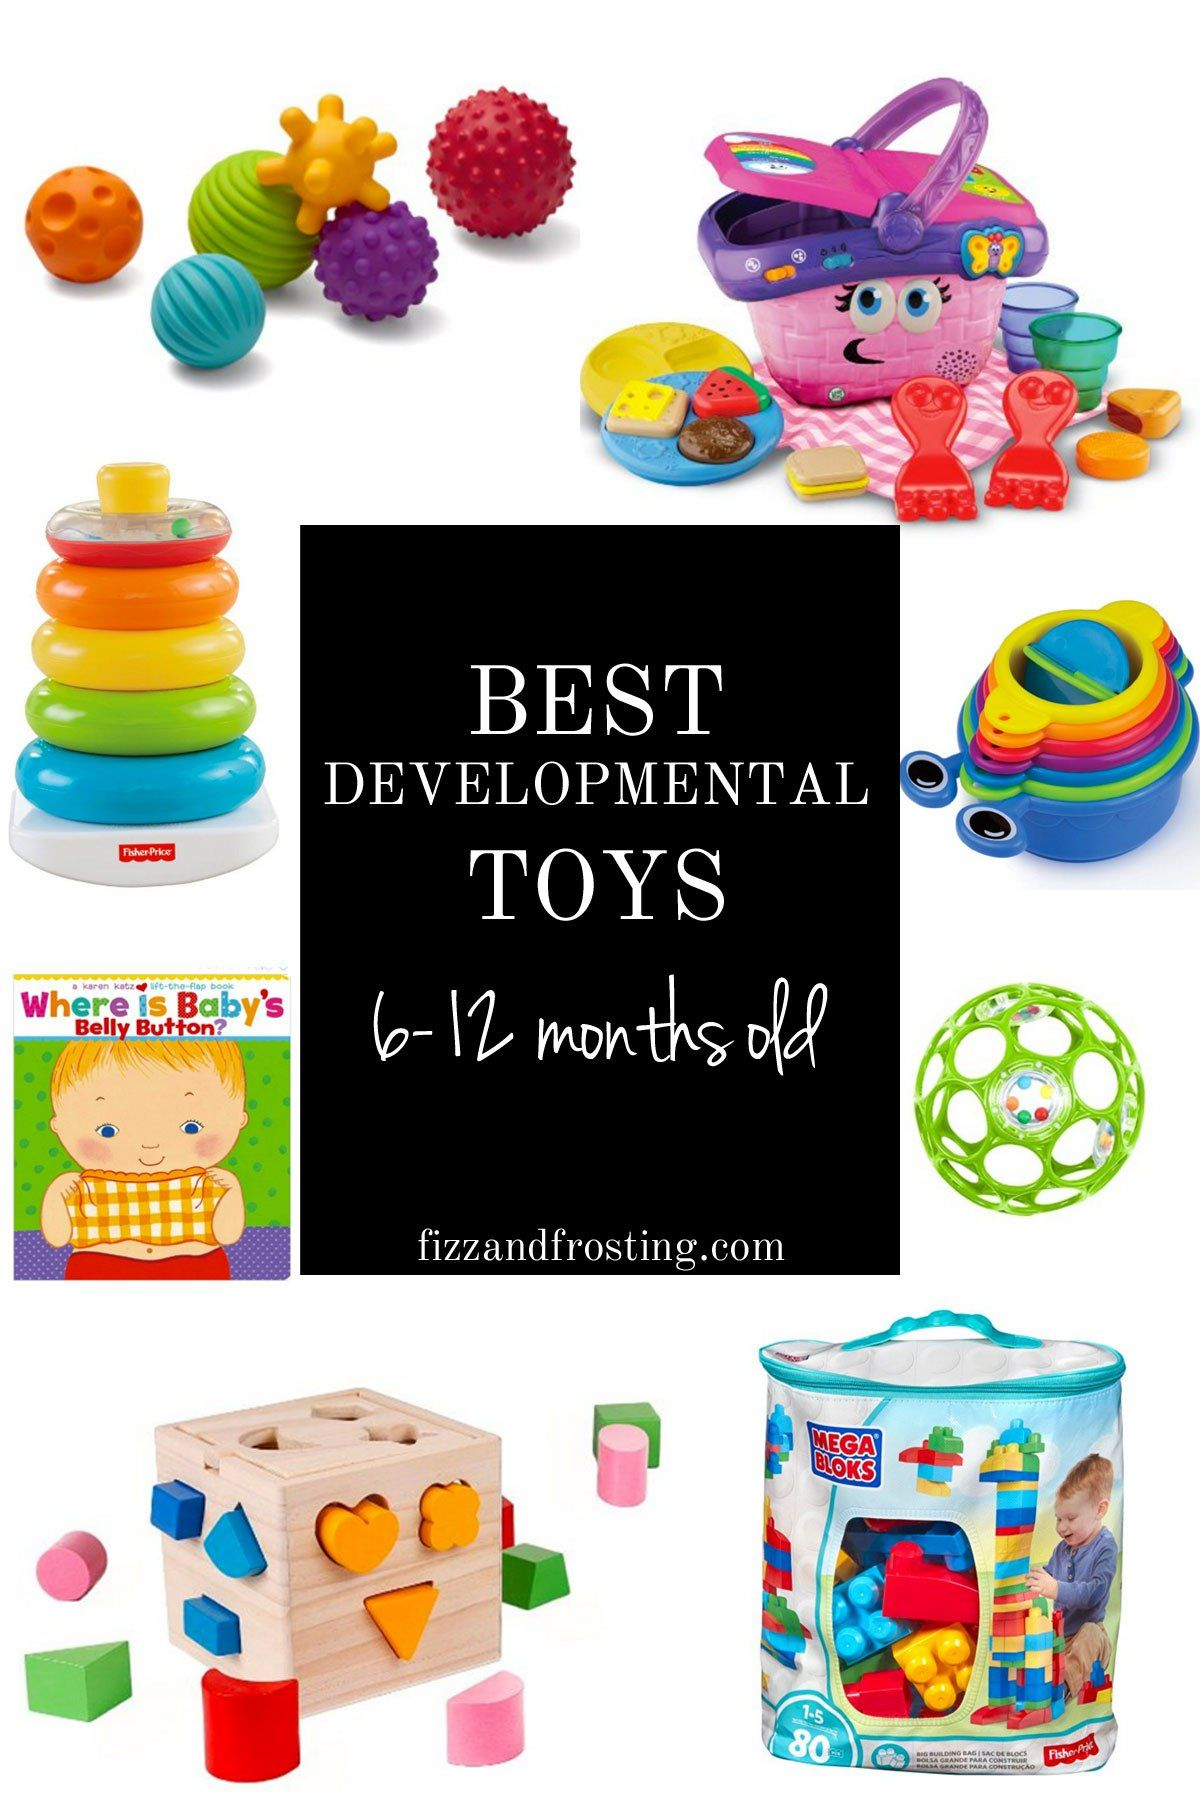 educational toys for babies 6 12 months old